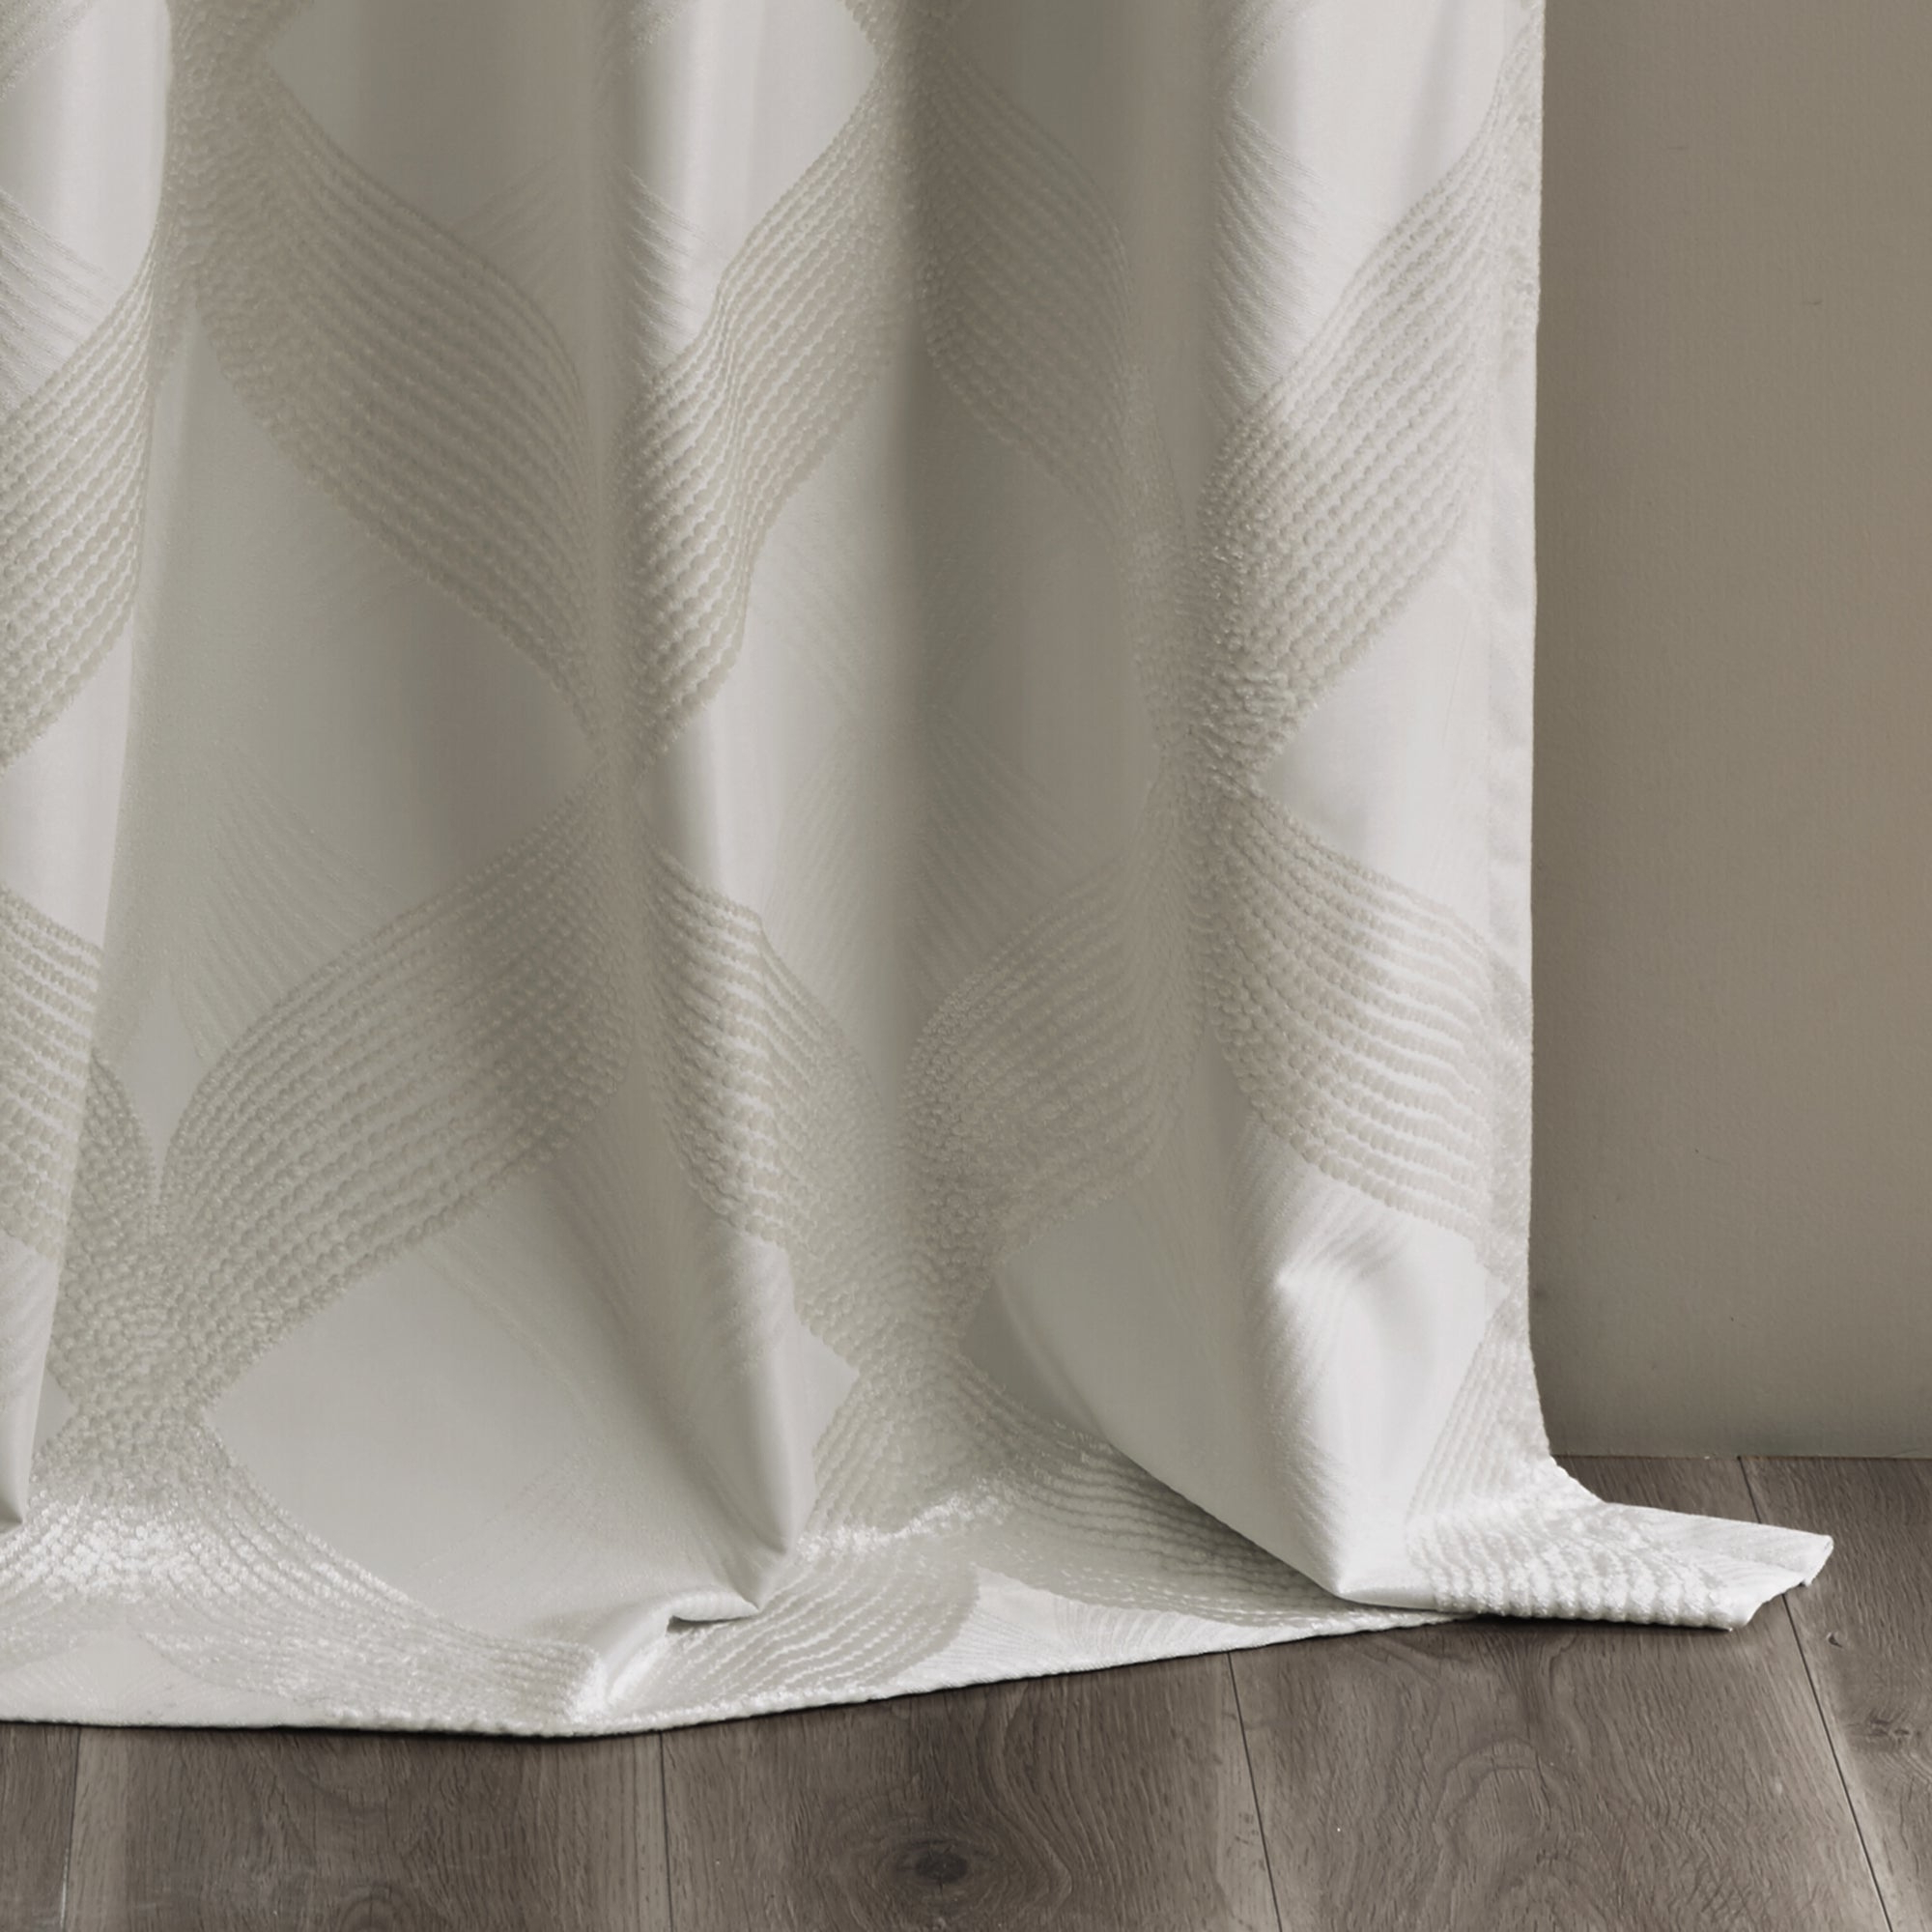 Sunsmart Abel Ogee Knitted Jacquard Total Blackout Curtain Panel Throughout 2020 Sunsmart Abel Ogee Knitted Jacquard Total Blackout Curtain Panels (View 10 of 20)